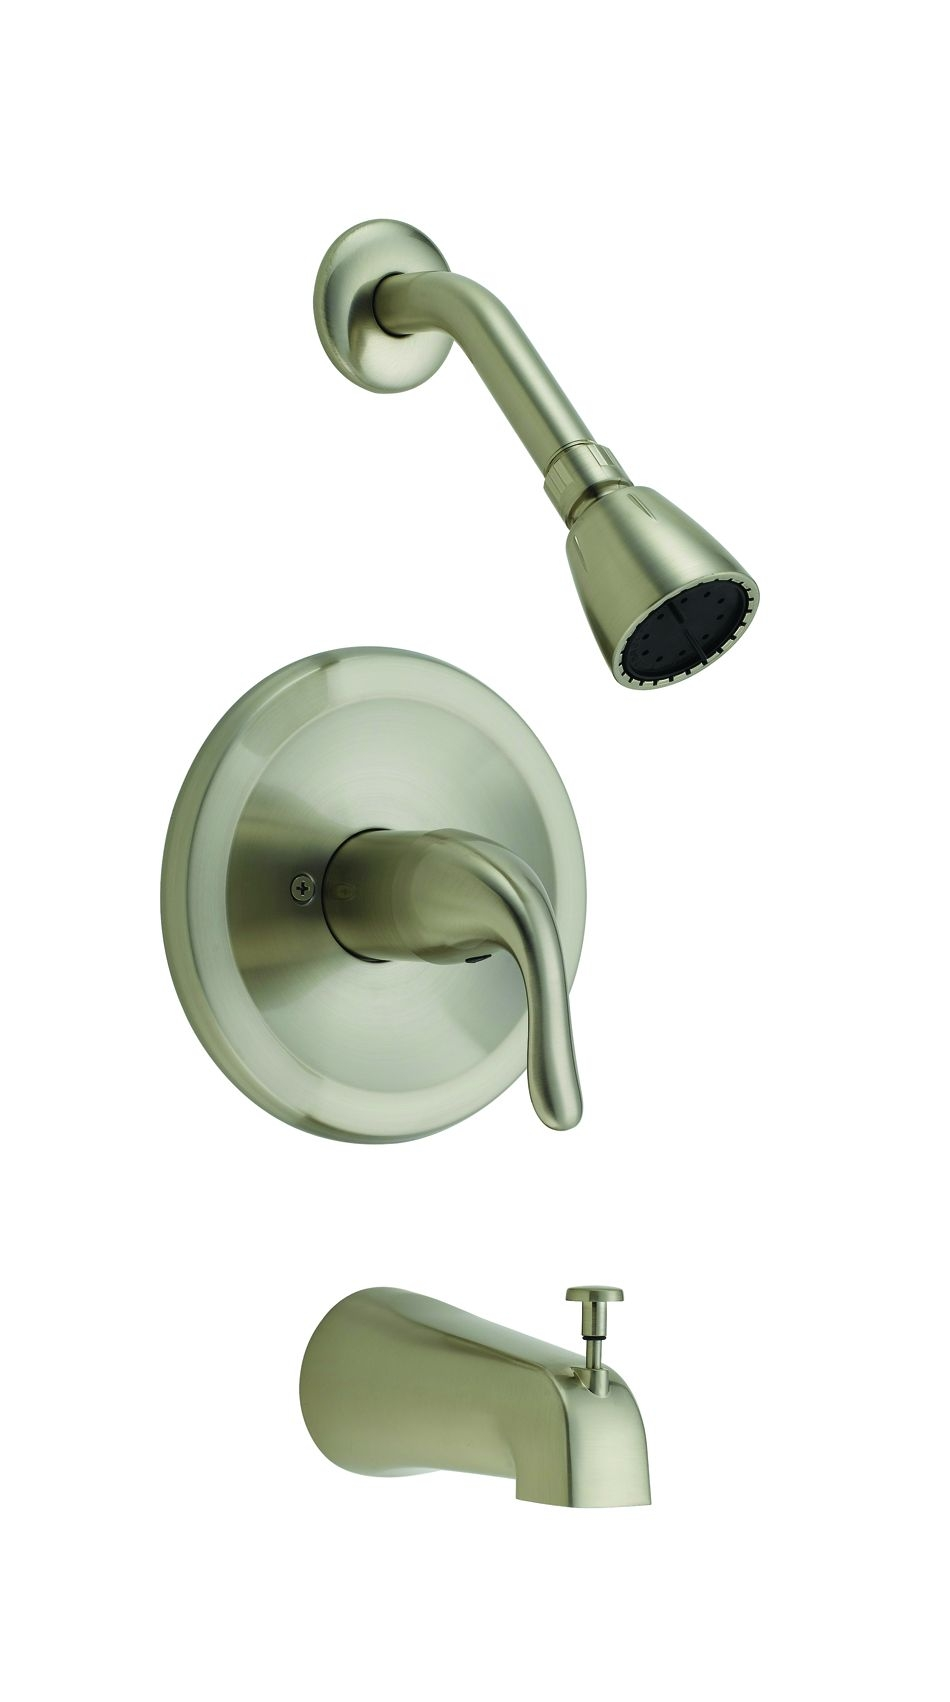 Ideas, plumbing faucets bath faucets tub shower matco norca murray with regard to dimensions 950 x 1702  .